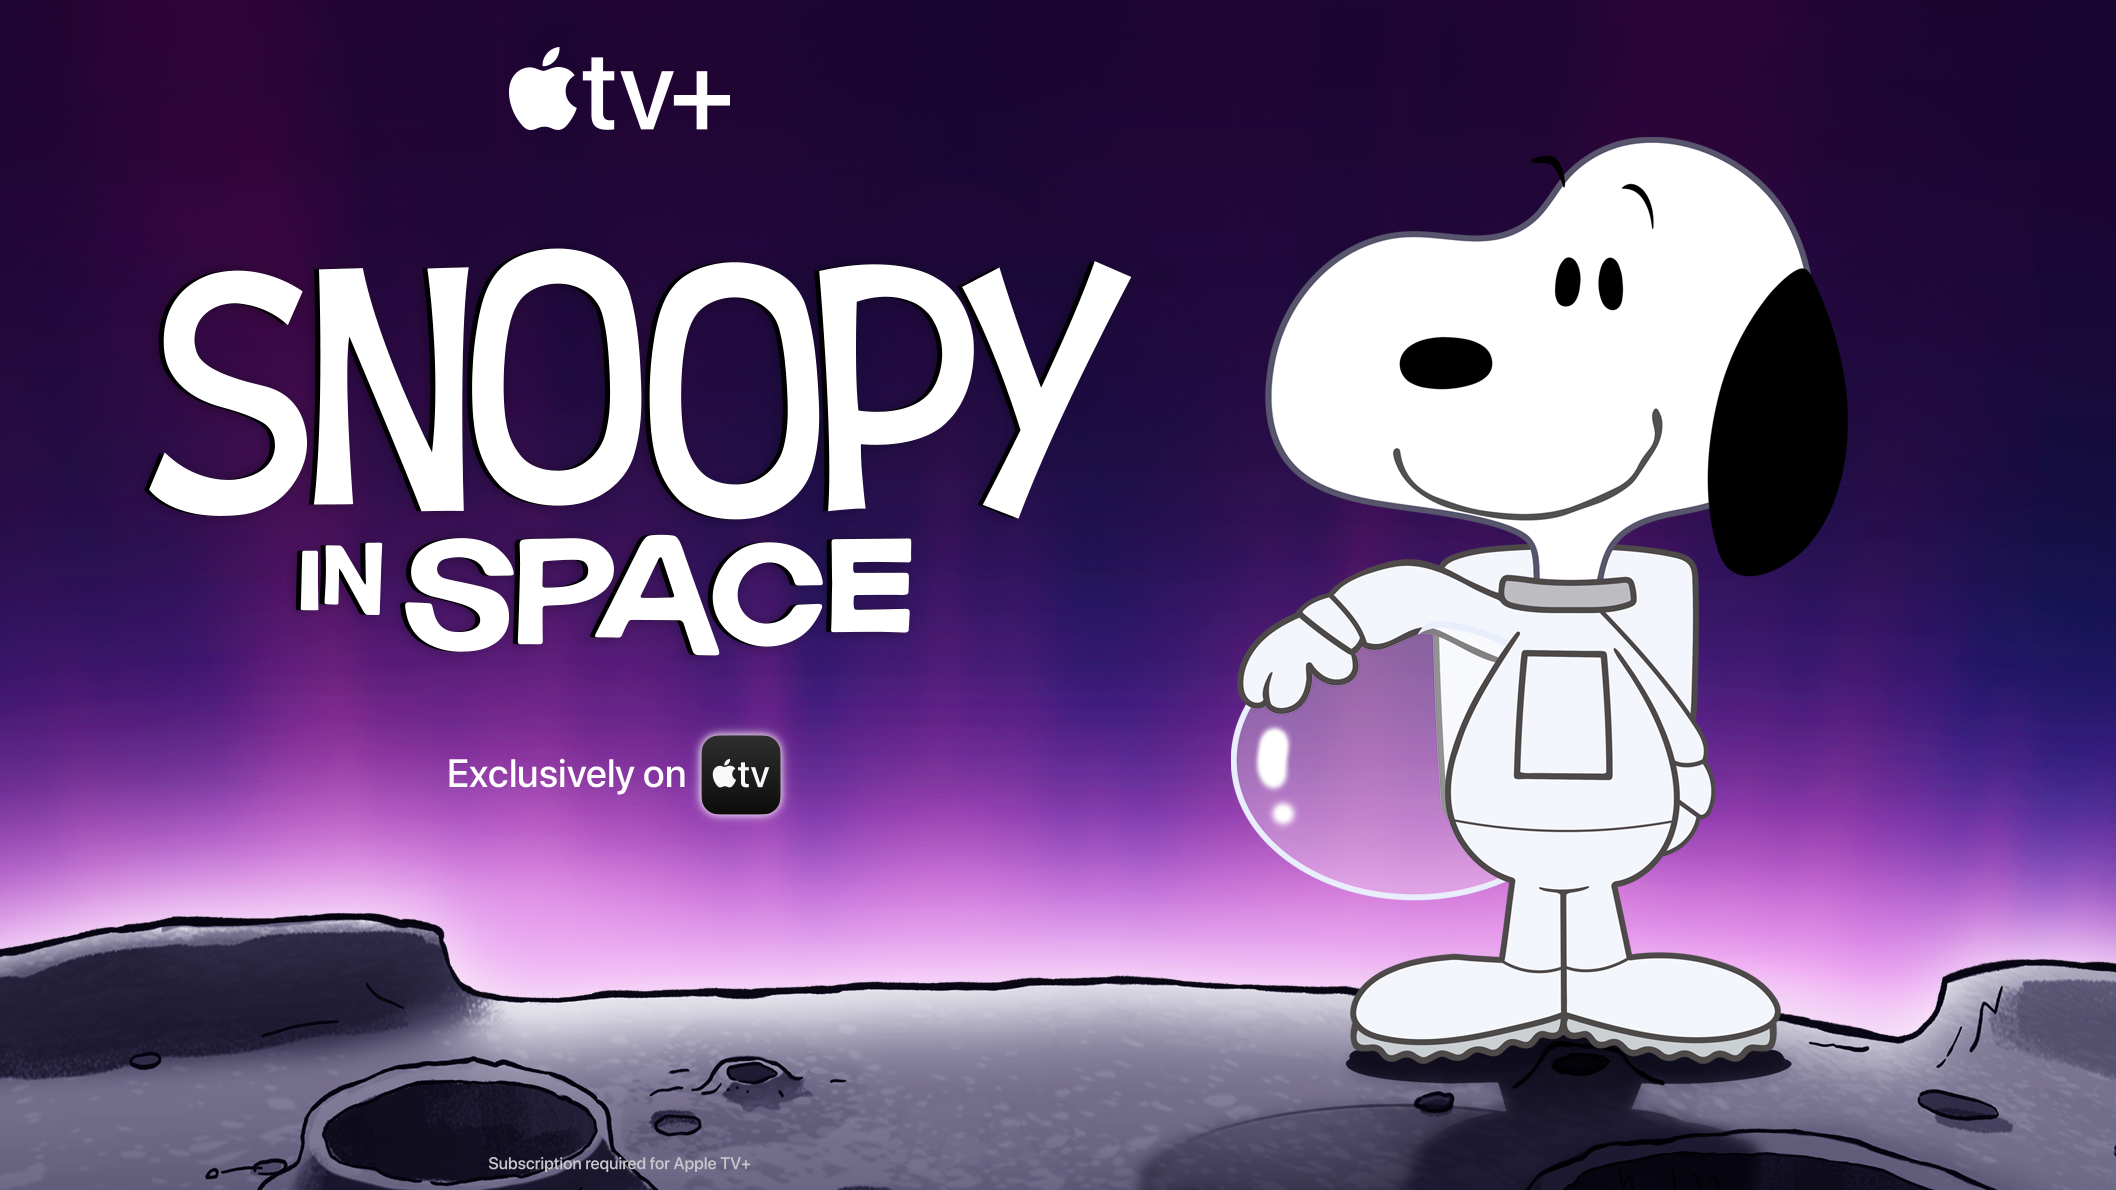 Apple TV+ - Snoopy in Space - Watch on Apple TV